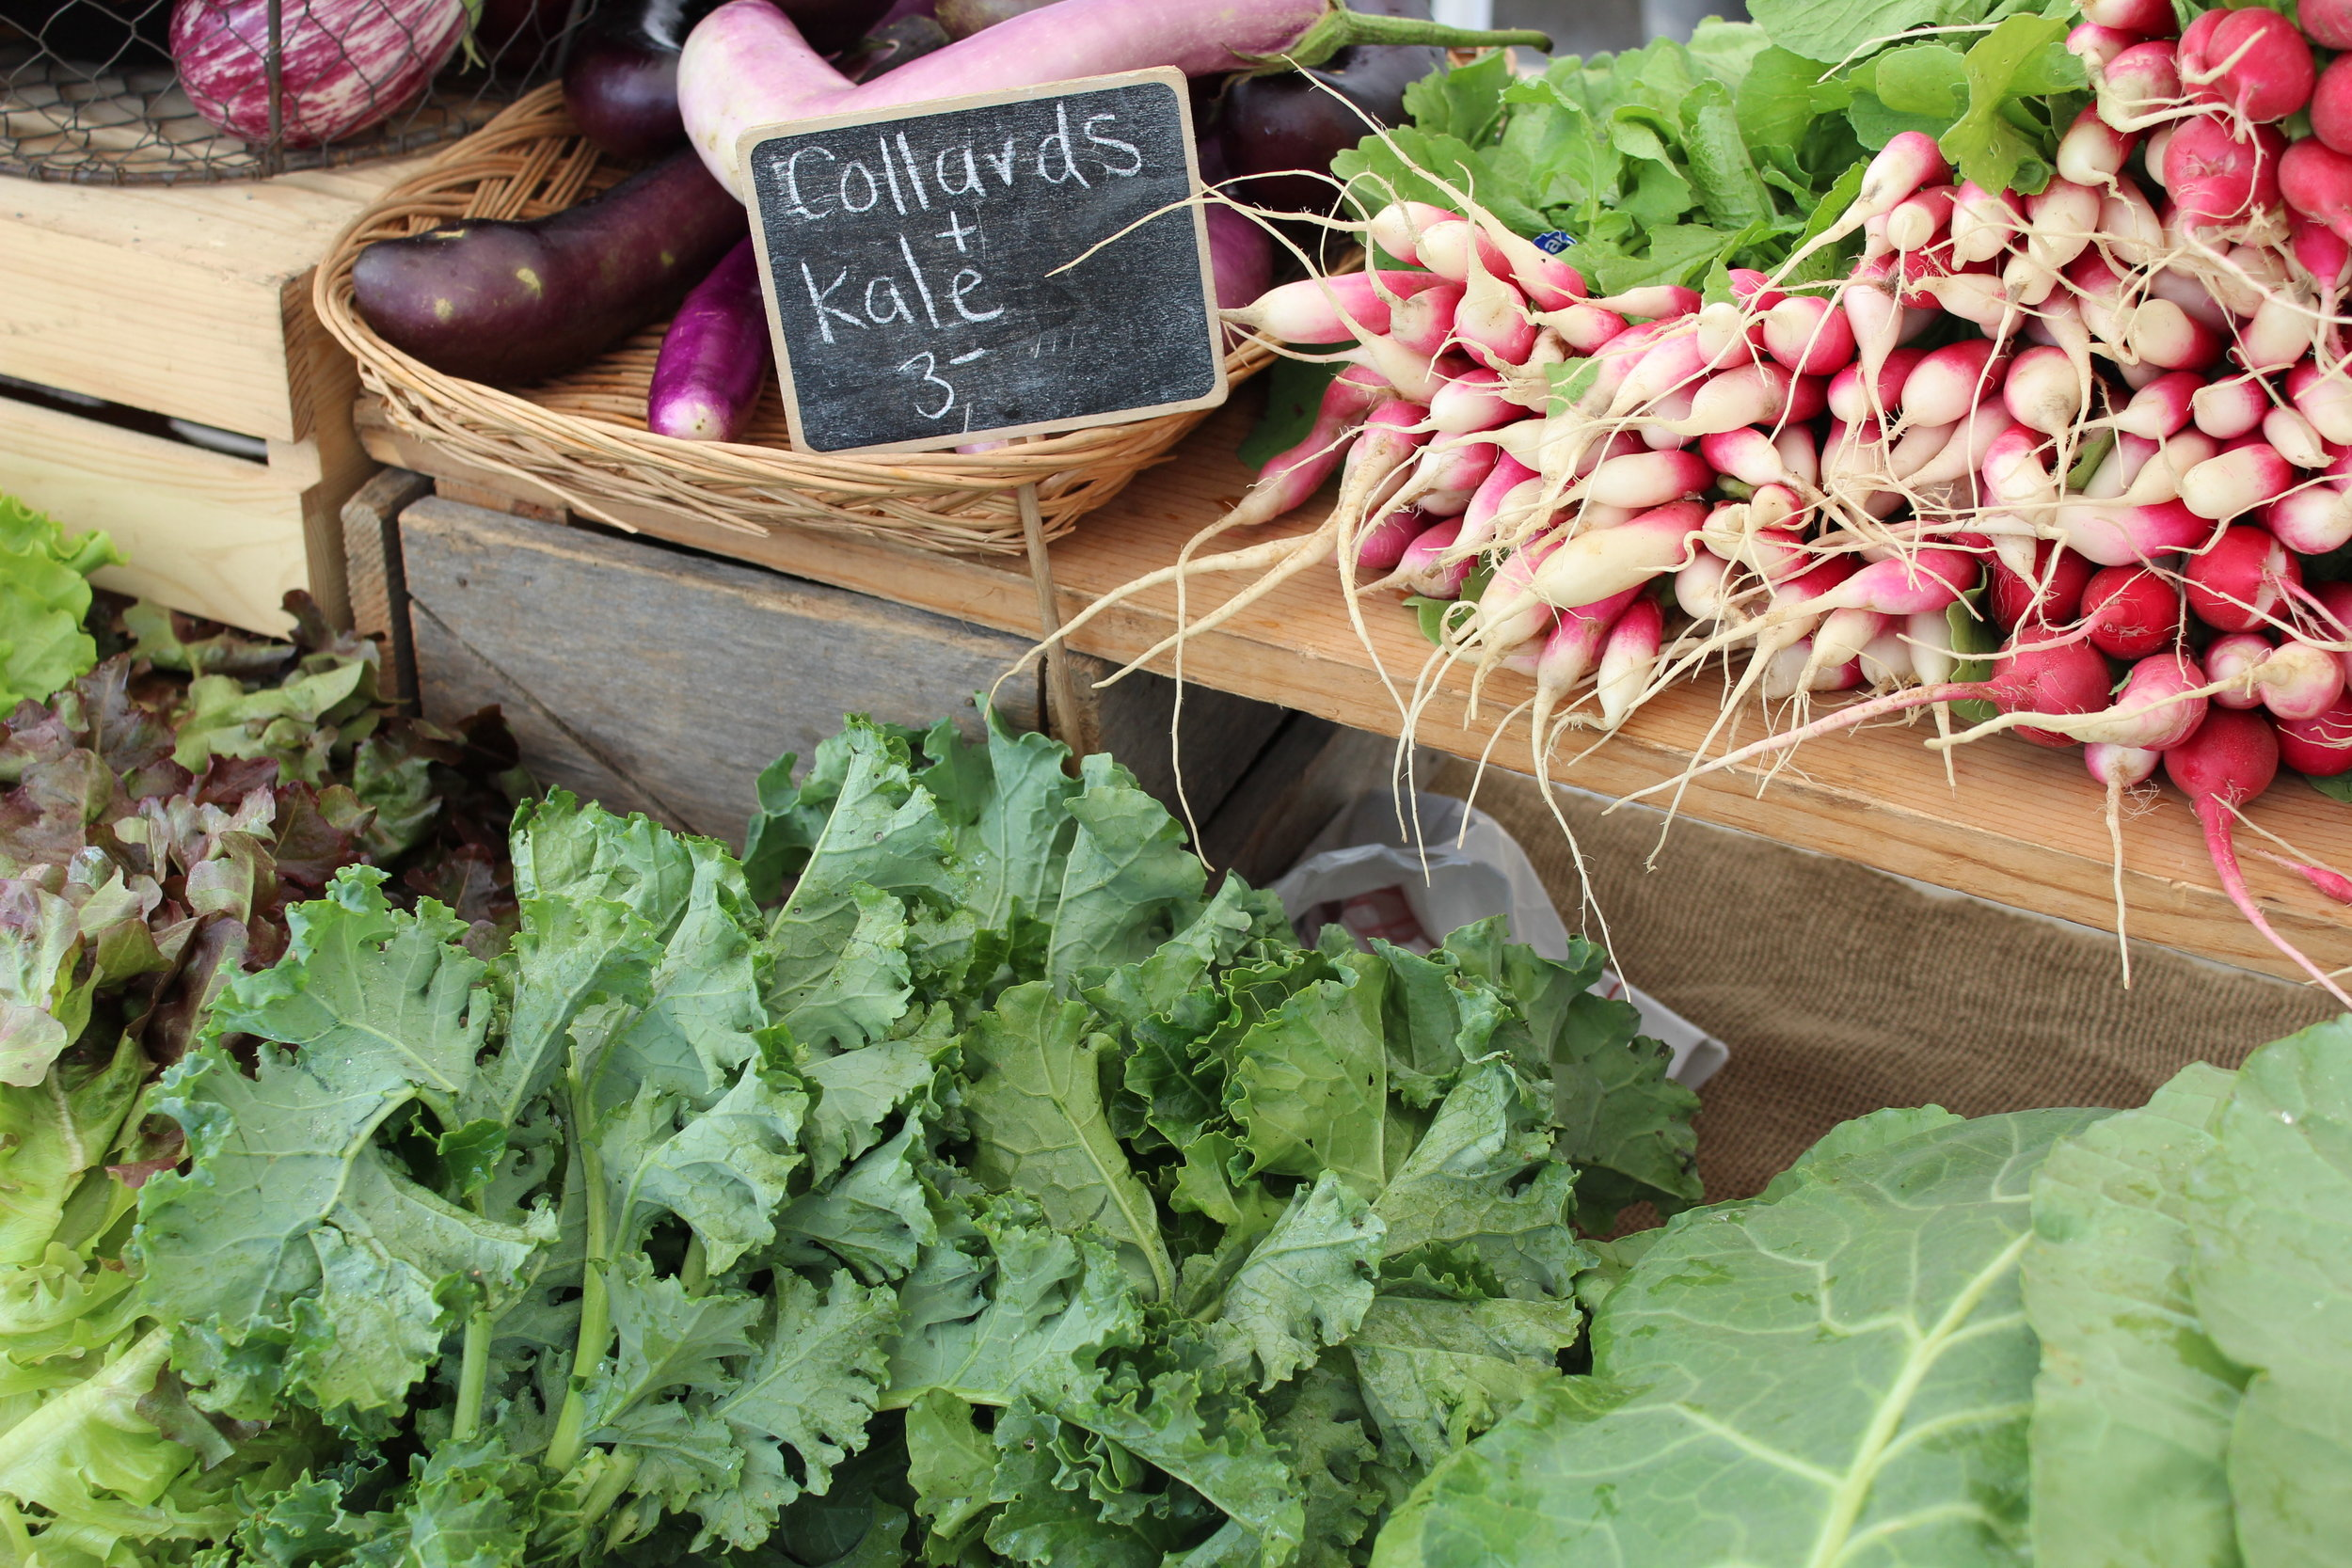 """Kale is harvested when the leaves are about the size of your hand. Use sharp scissors to trim, cutting from the outside of the plant. Pick a fistful of leaves each harvest. Kale can handle temperatures in the 20s, so this is one you can harvest for awhile.  Harvest collards when the leaves are 10"""" long, dark green and young. Again use sharp scissors to trim. As you trim the plant will start to look like a small tree, but new leaves will continue to emerge from the center of the plant."""